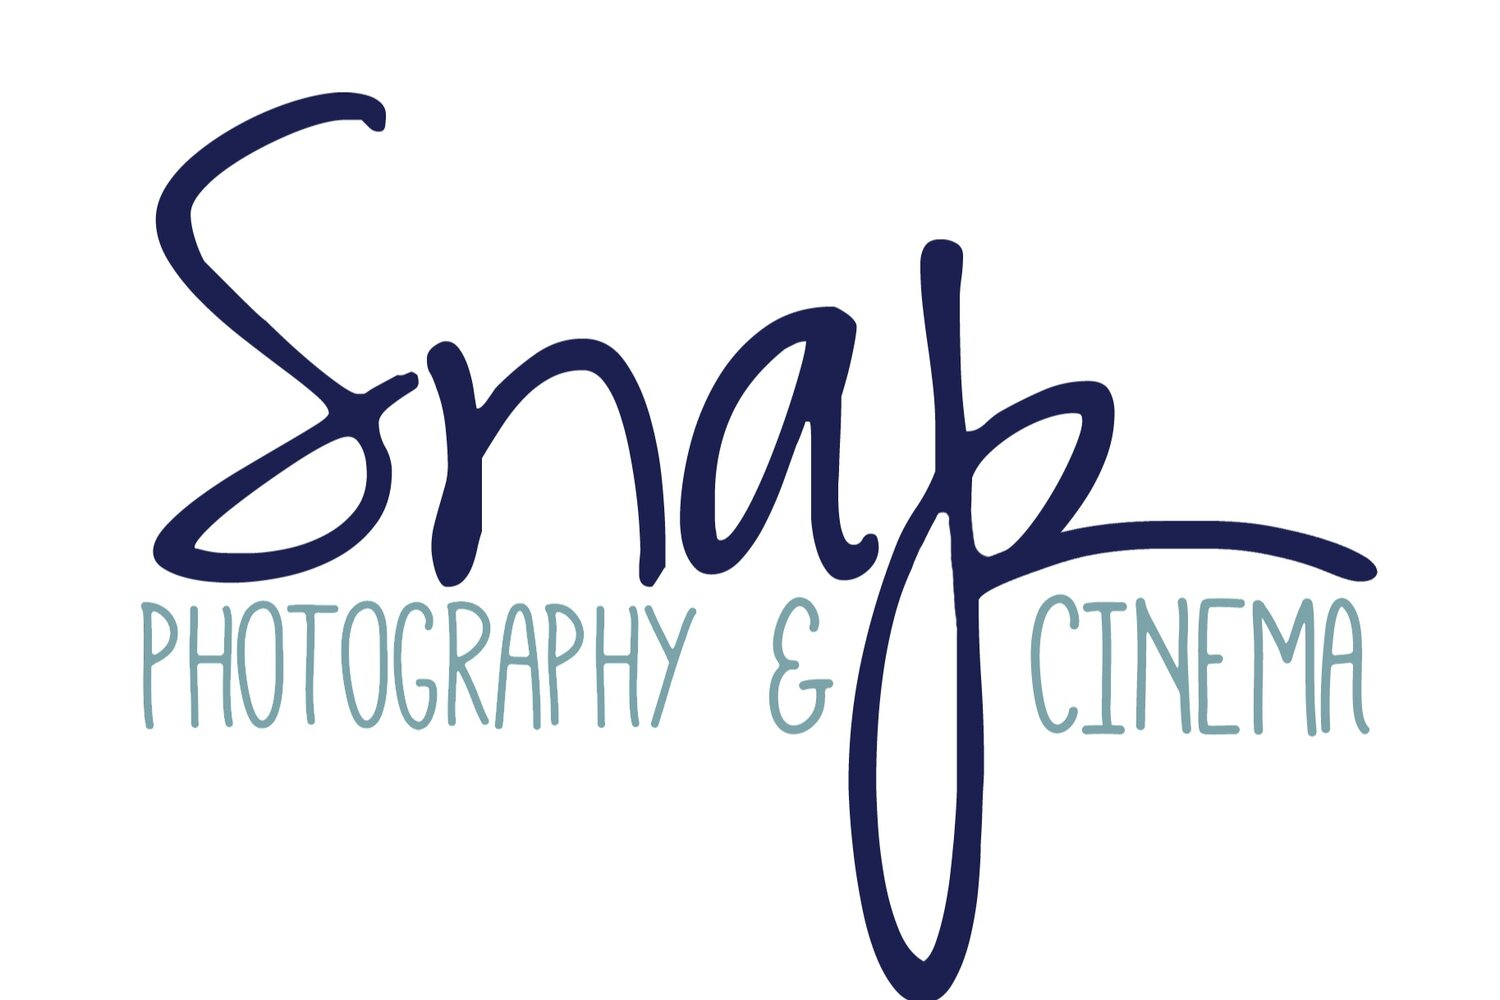 Snap Photography & Cinema